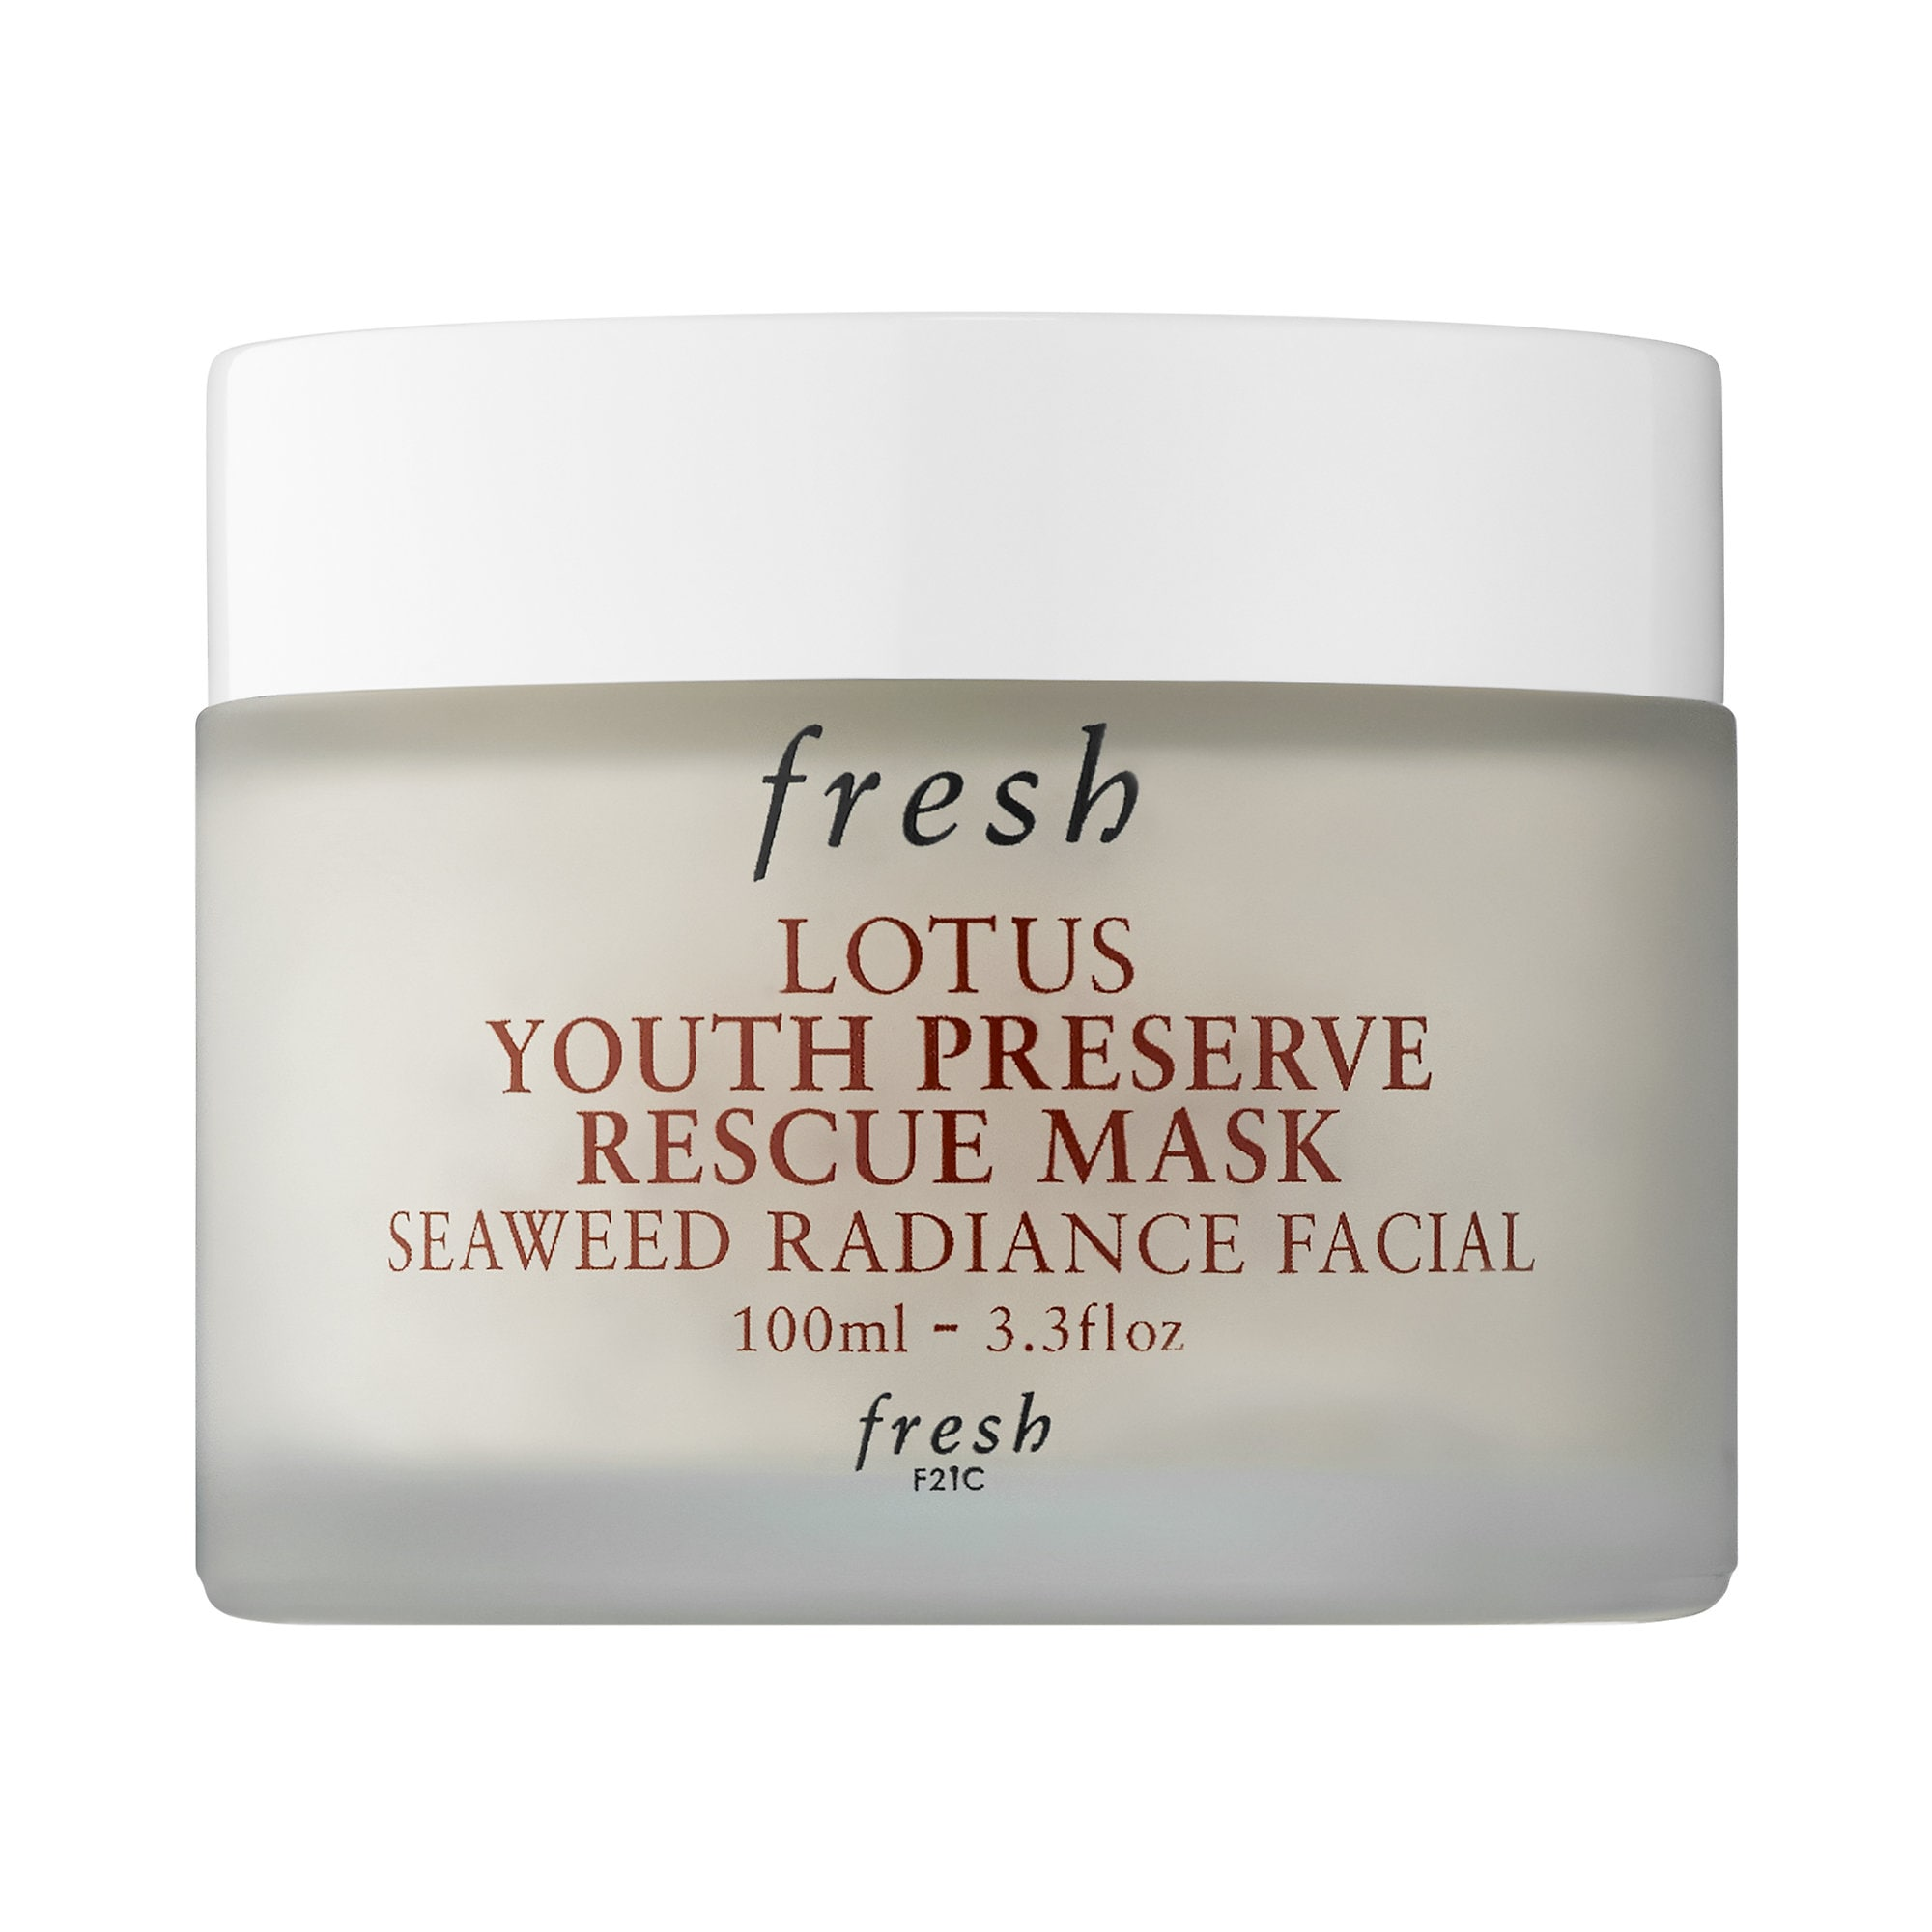 Fresh - Lotus Youth Preserve Rescue Mask